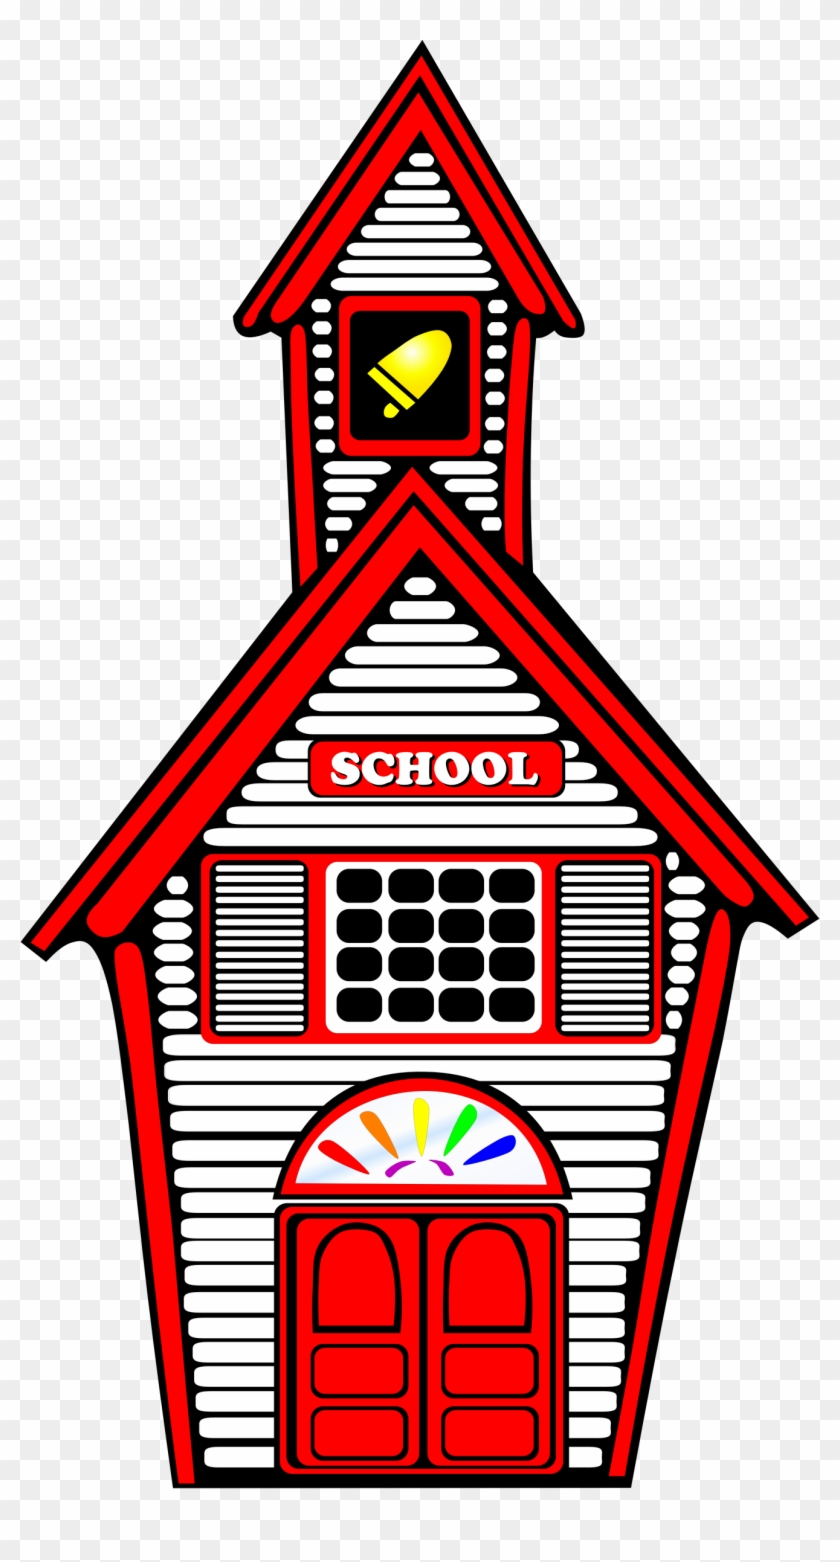 Schoolhouse Clipart Kcn7lnmcq Pictures Whiteschoolhouse - School Building Clip Art #280034